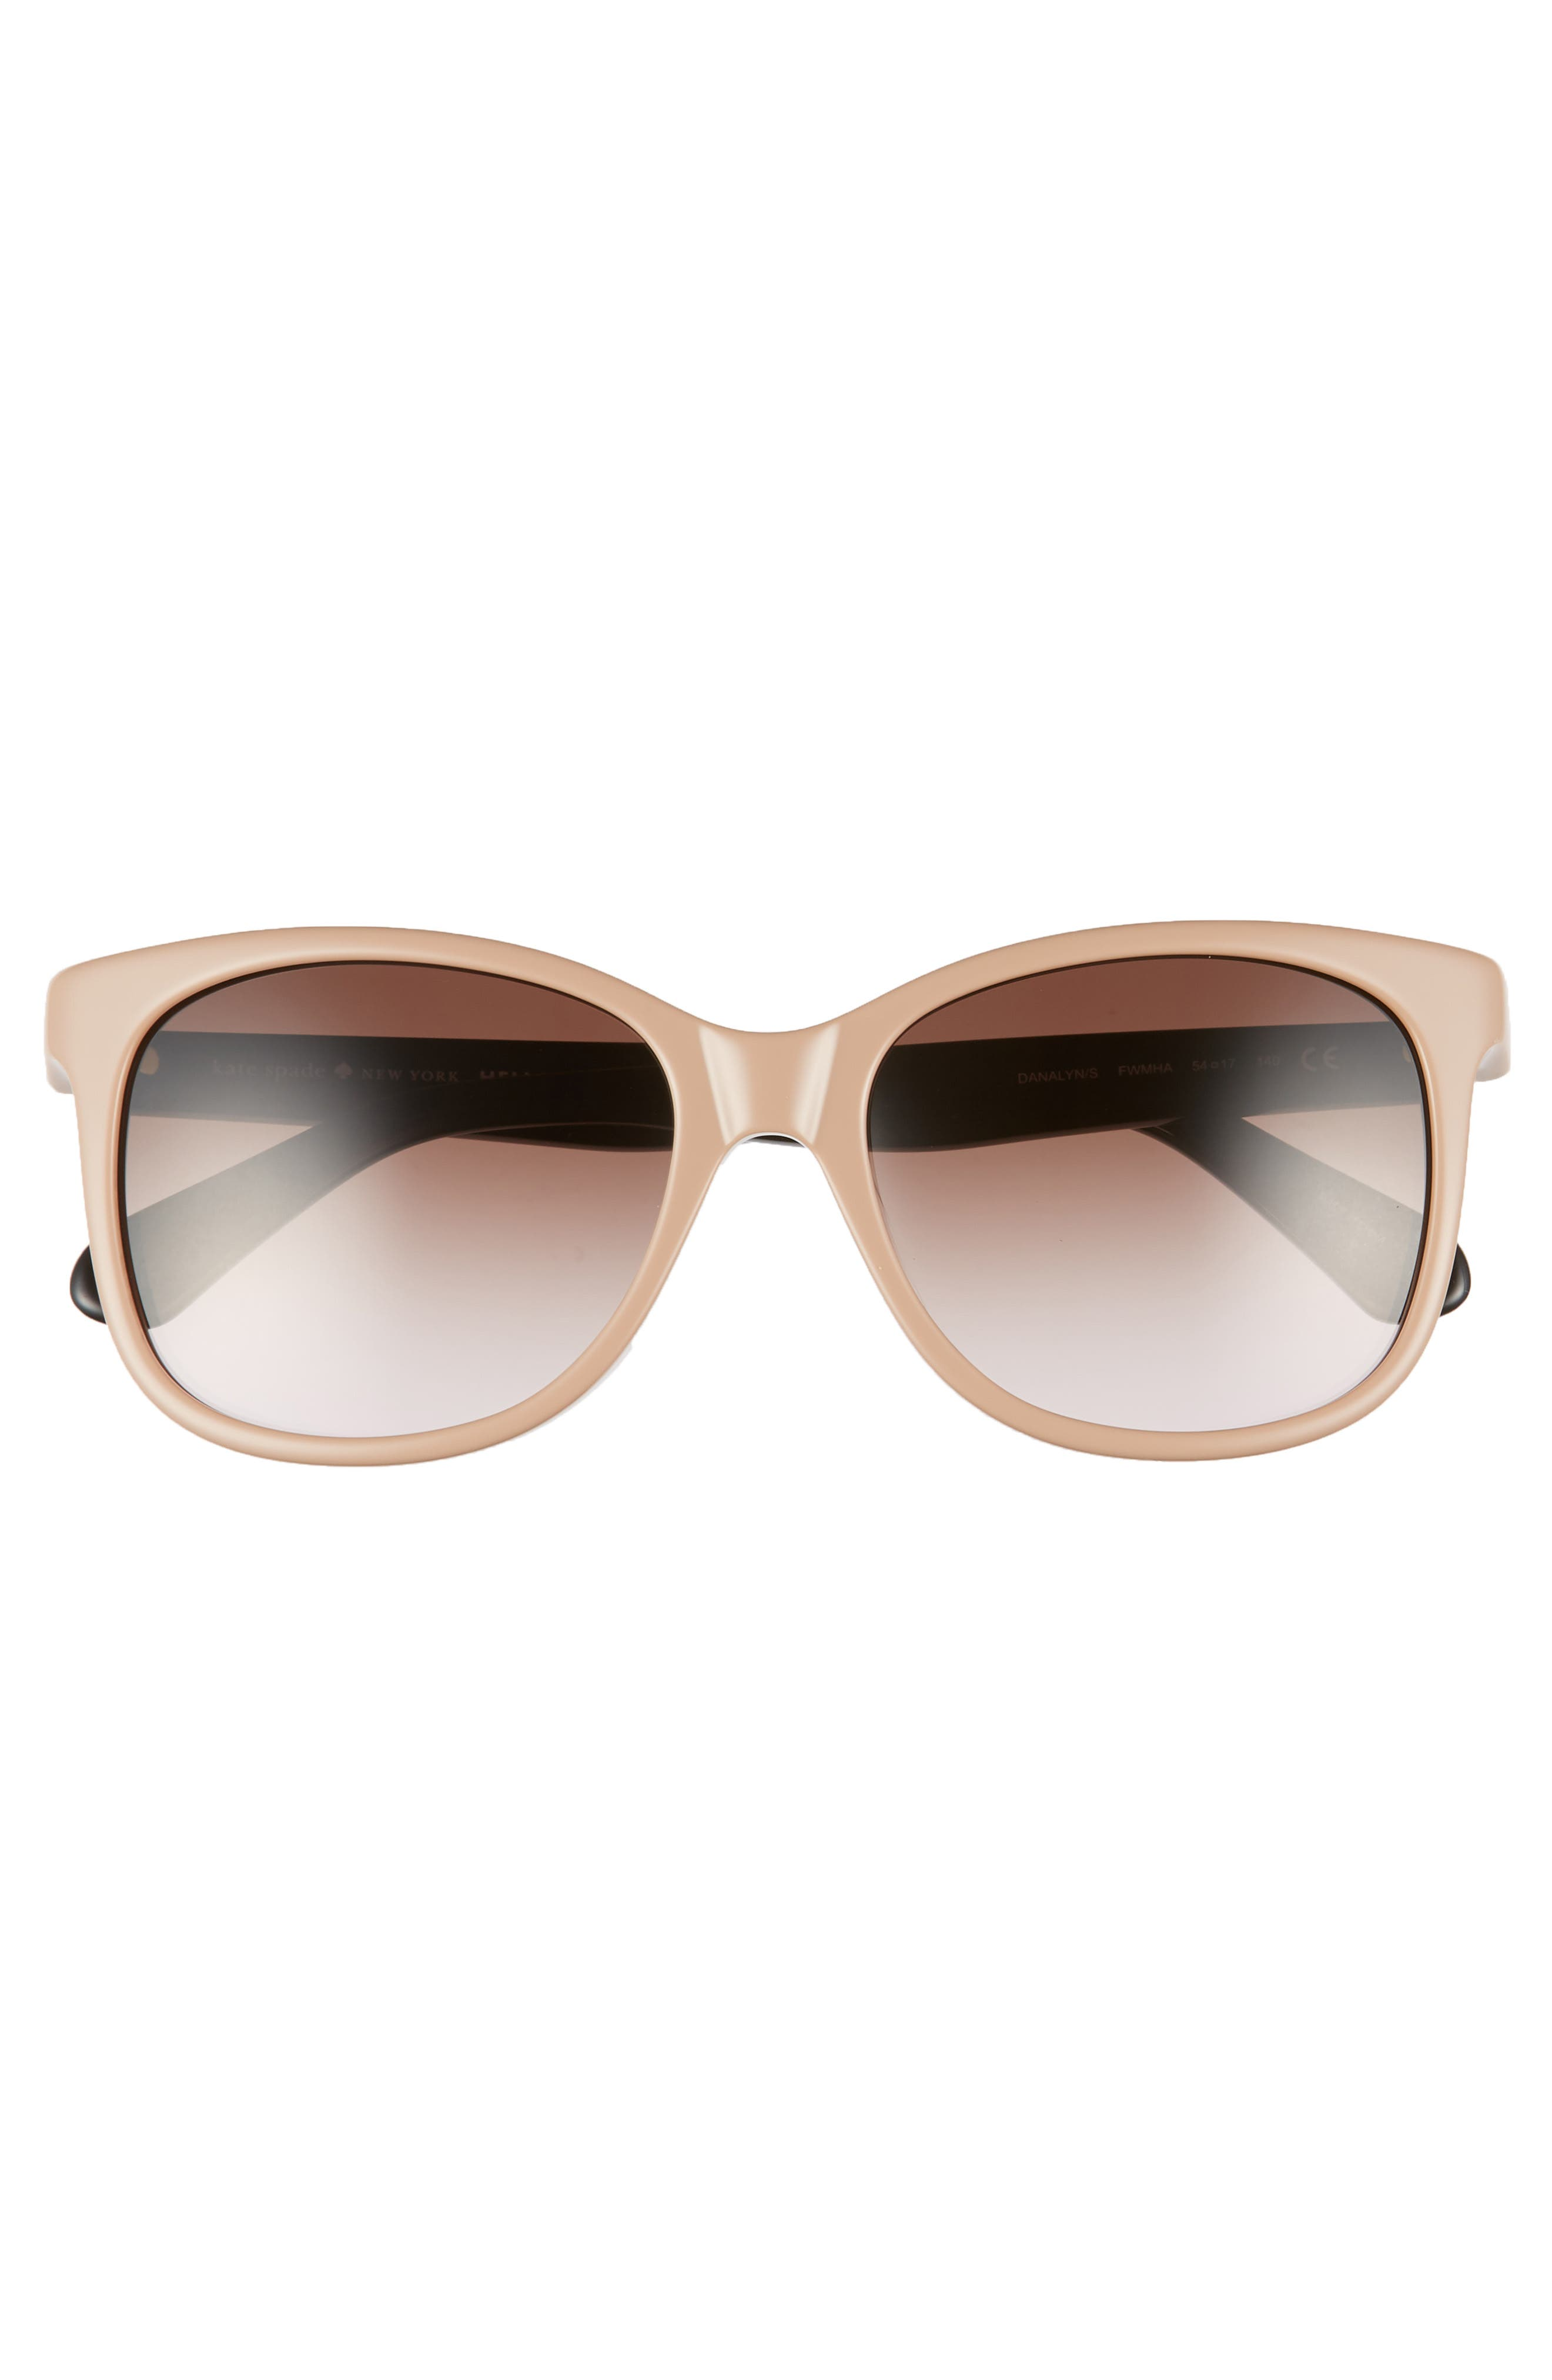 danalyns 54mm sunglasses,                             Alternate thumbnail 3, color,                             NUDE